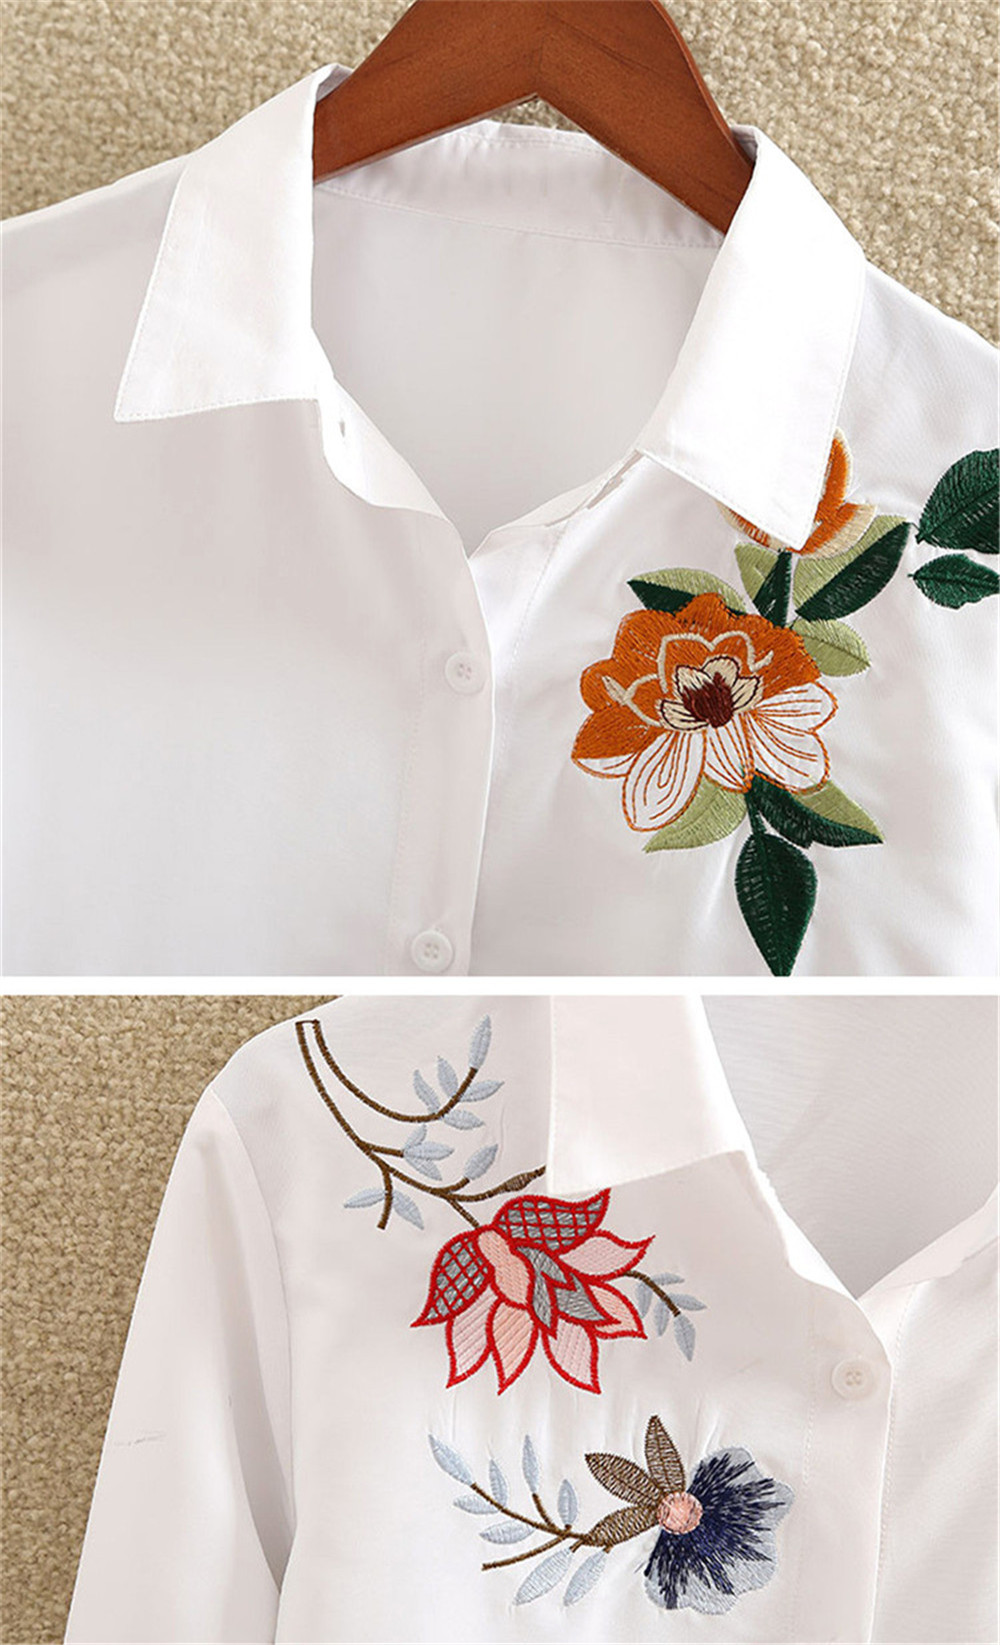 Floral Embroidery White Shirt Blouse  2020 Spring Casual TopTurn Down Collar Long Sleeve Cotton Women's Blouse Feminina 1518 (3)